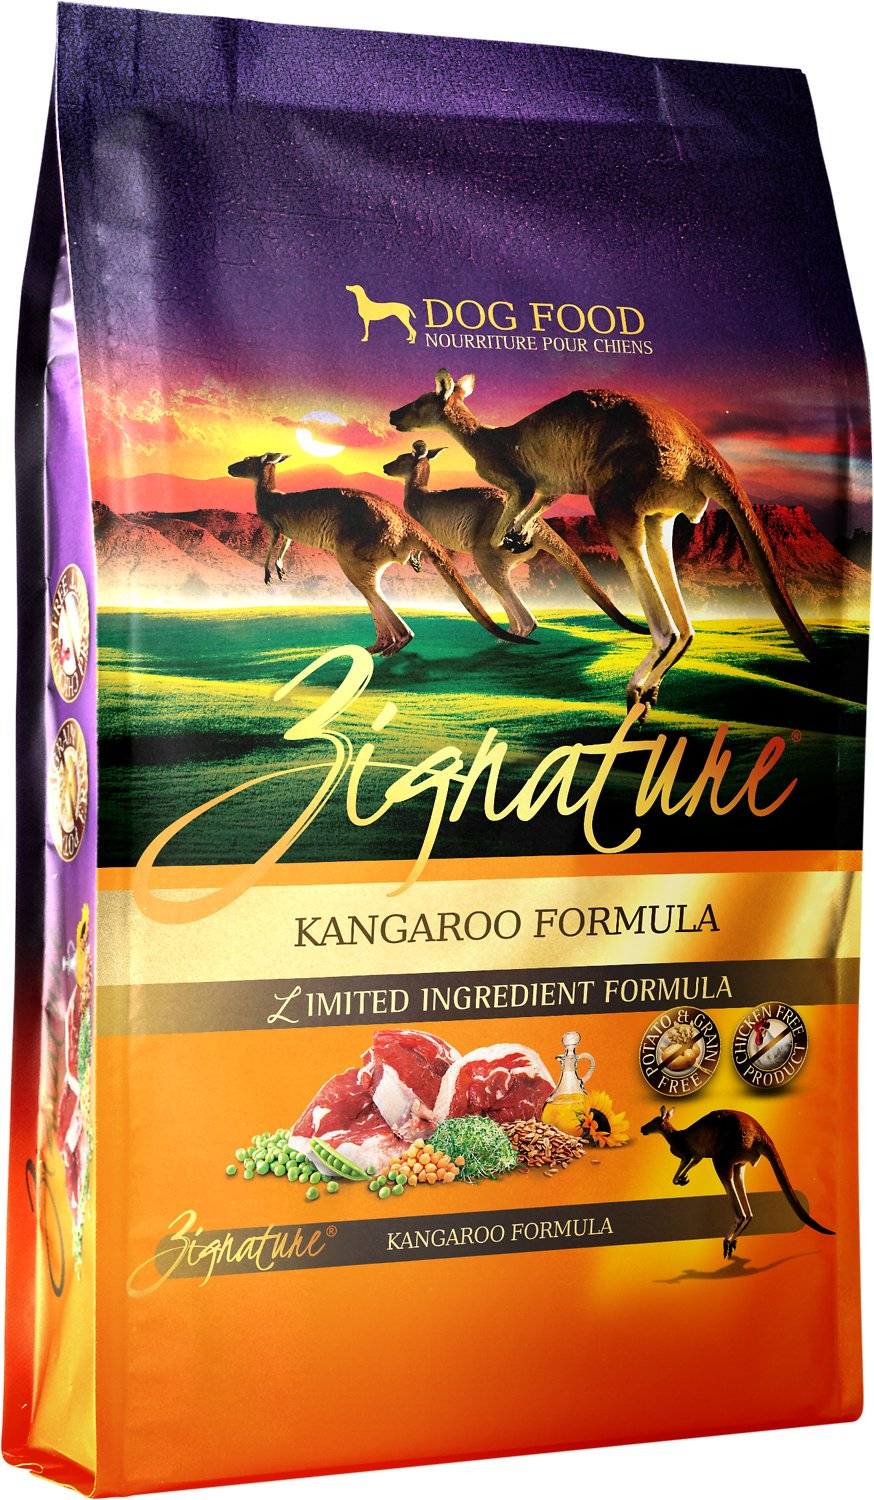 Zignature Kangaroo Limited Ingredient Formula Grain-Free Dry Dog Food Image